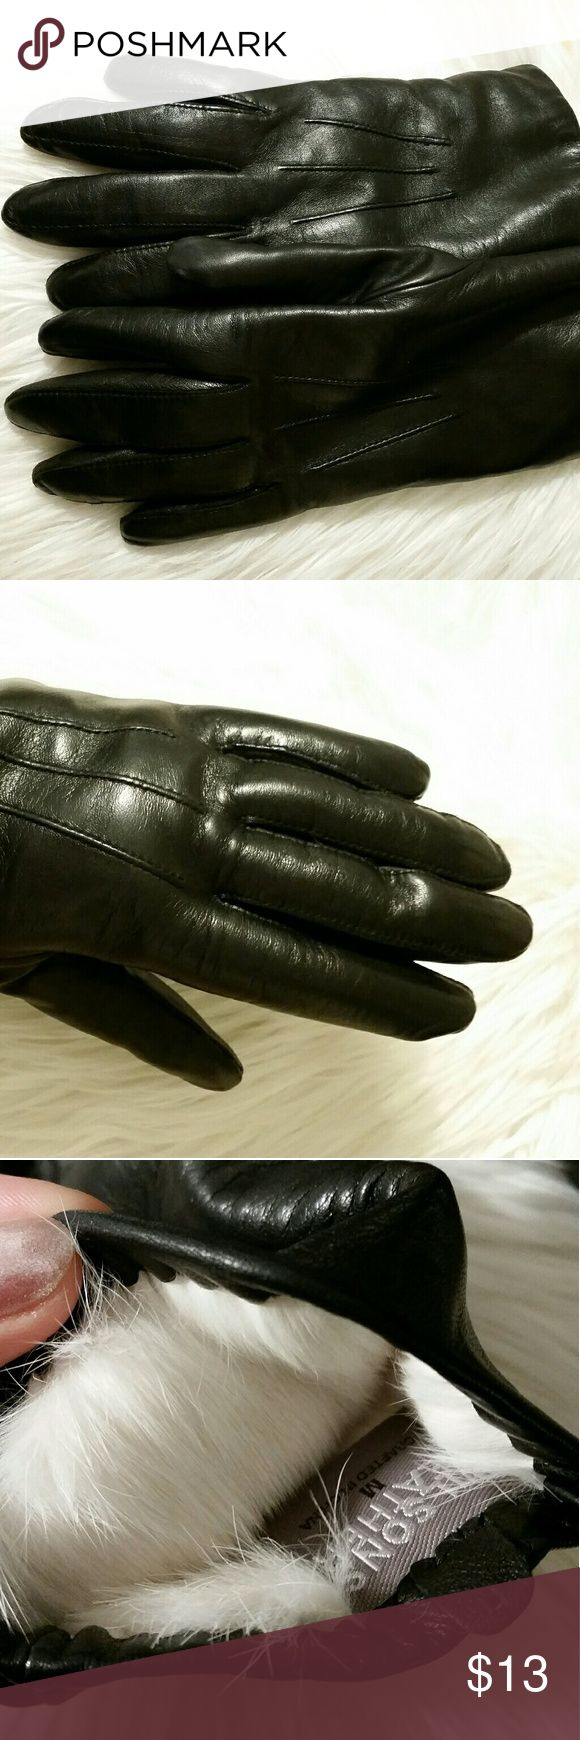 Black leather gloves asos - Black Leather Gloves With White Fur Lining Like New So So Warm All Items